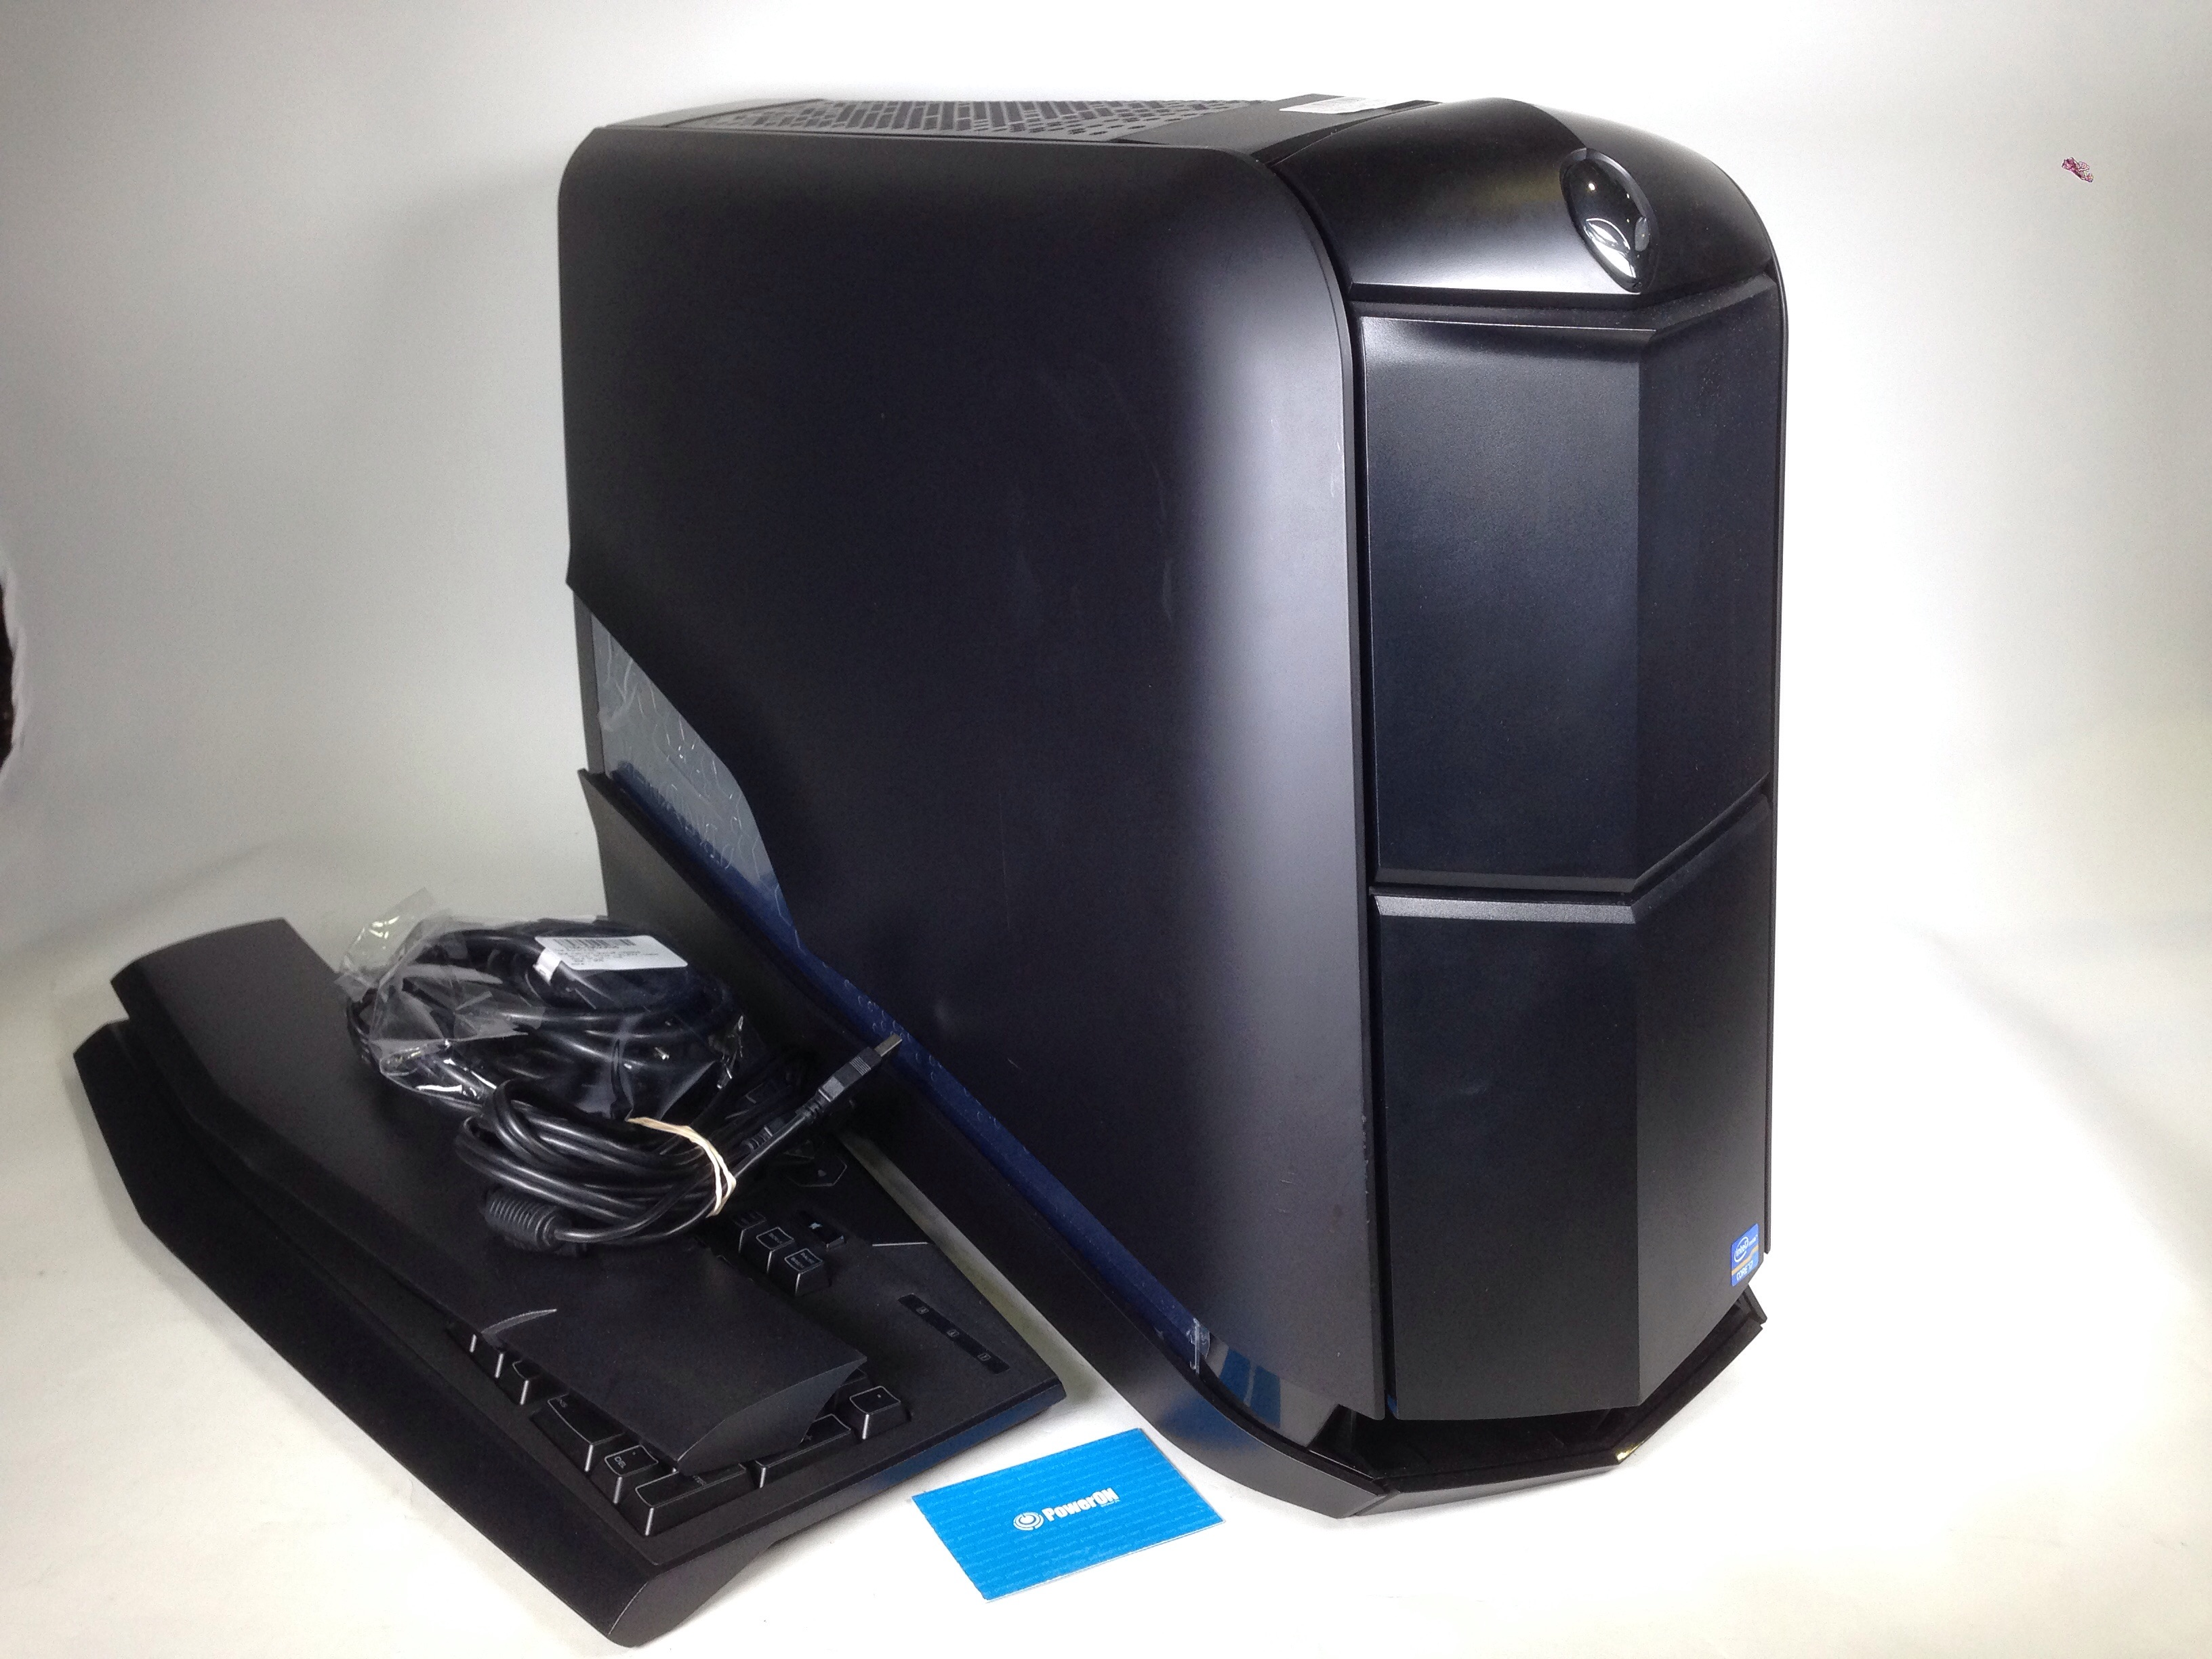 aurora r4 i7 3 6ghz 8gb 1tb gtx 660 good condition. Black Bedroom Furniture Sets. Home Design Ideas